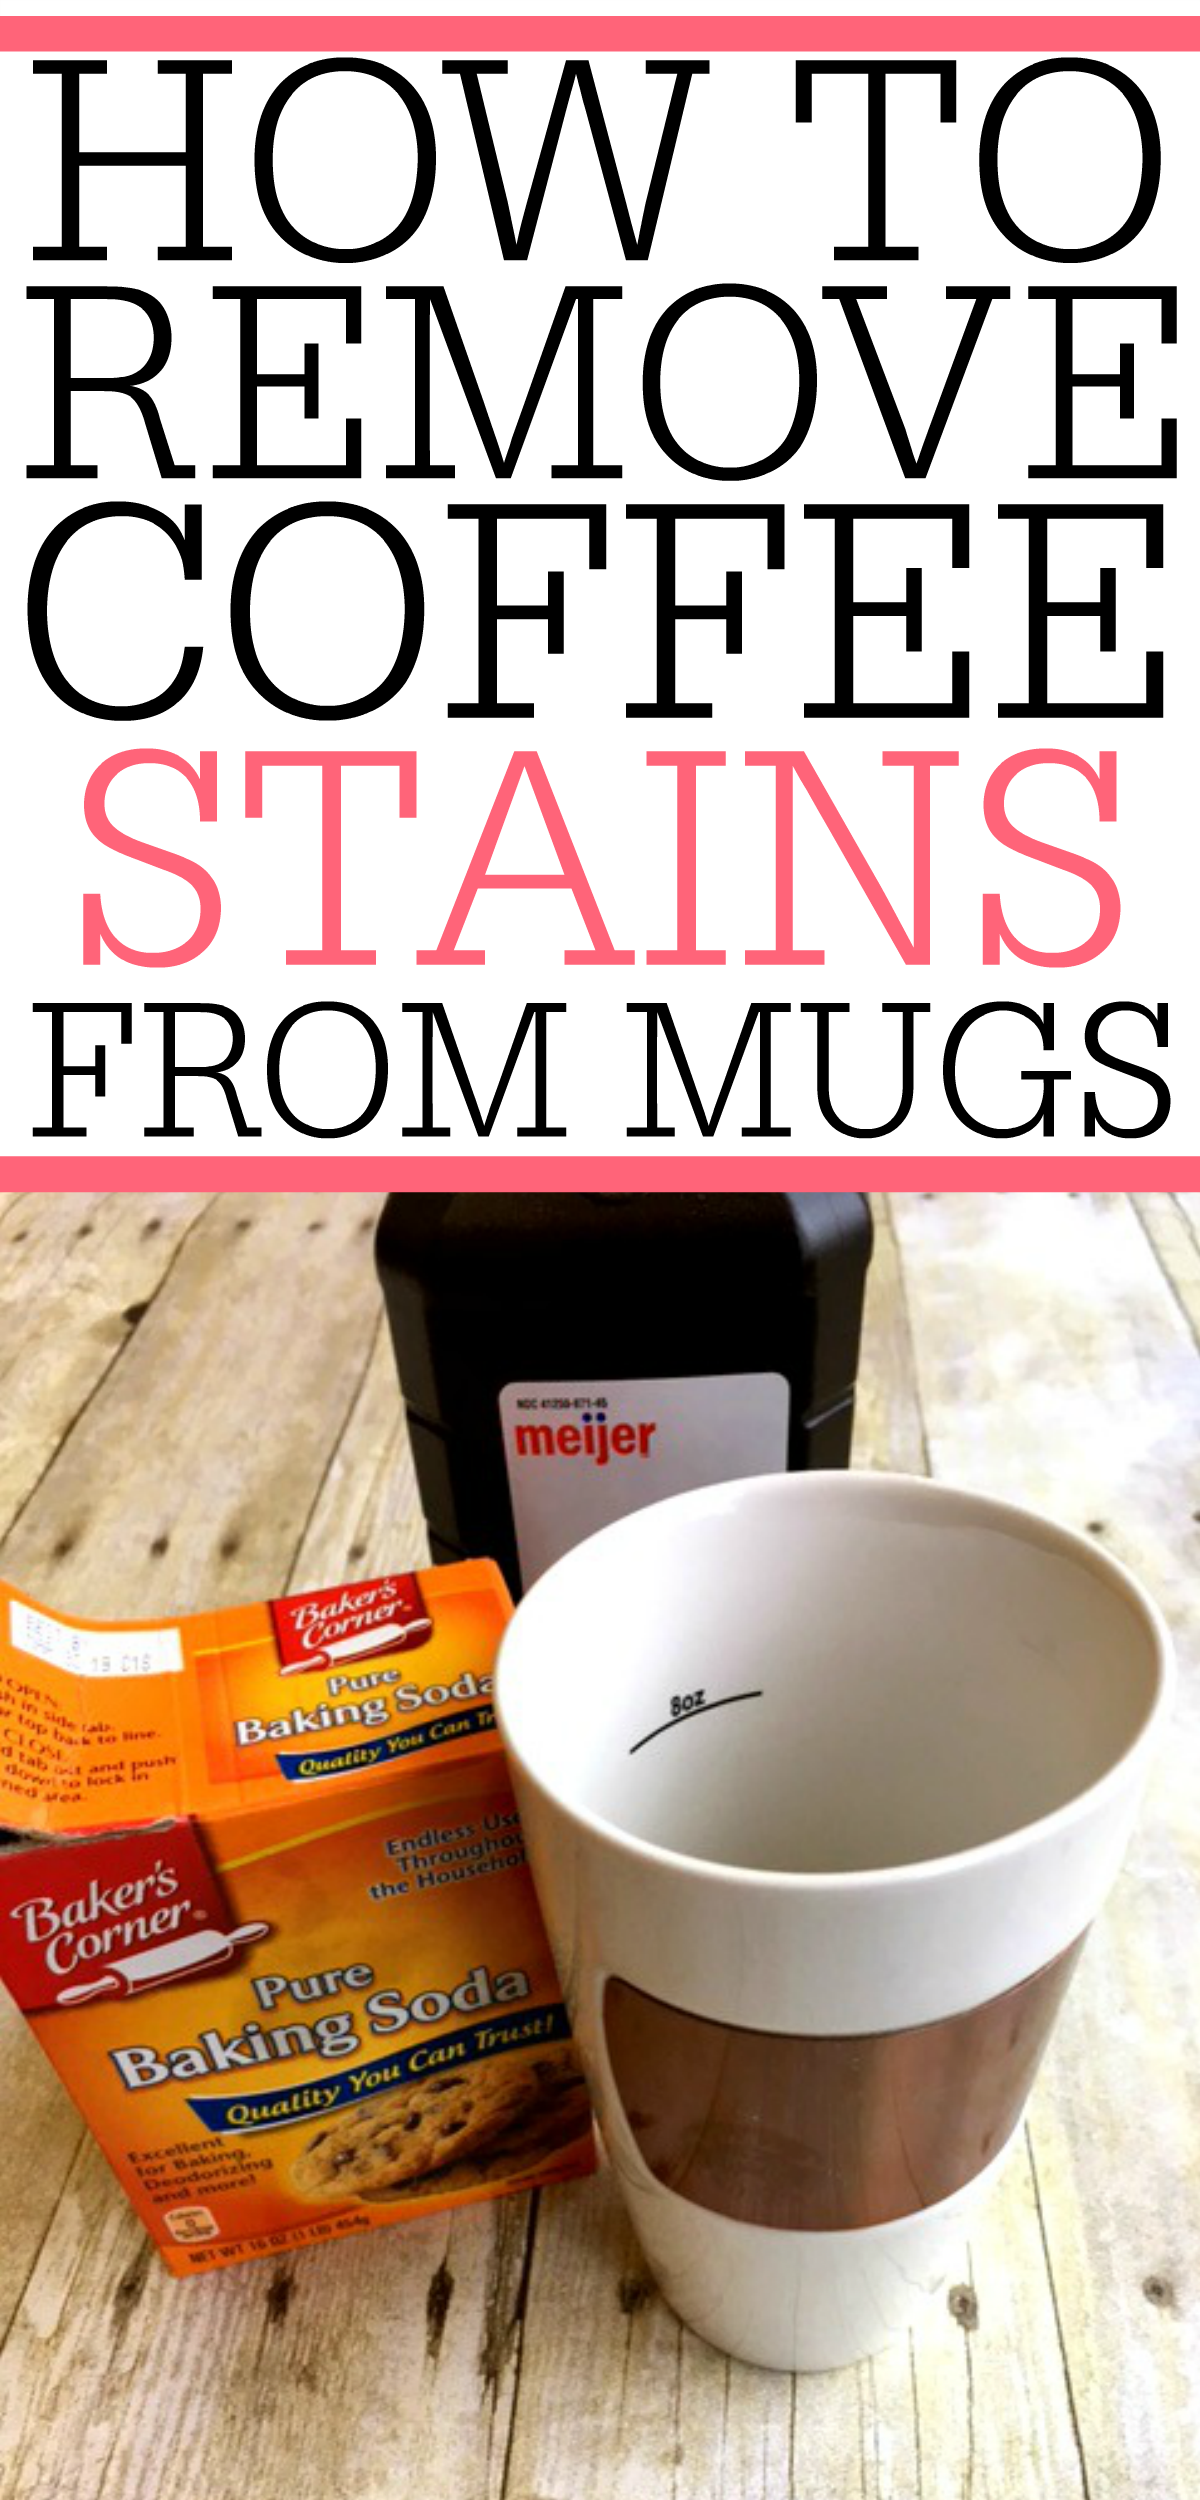 How To Remove Coffee Stains >> How To Remove Coffee Stains From Mugs Frugally Blonde